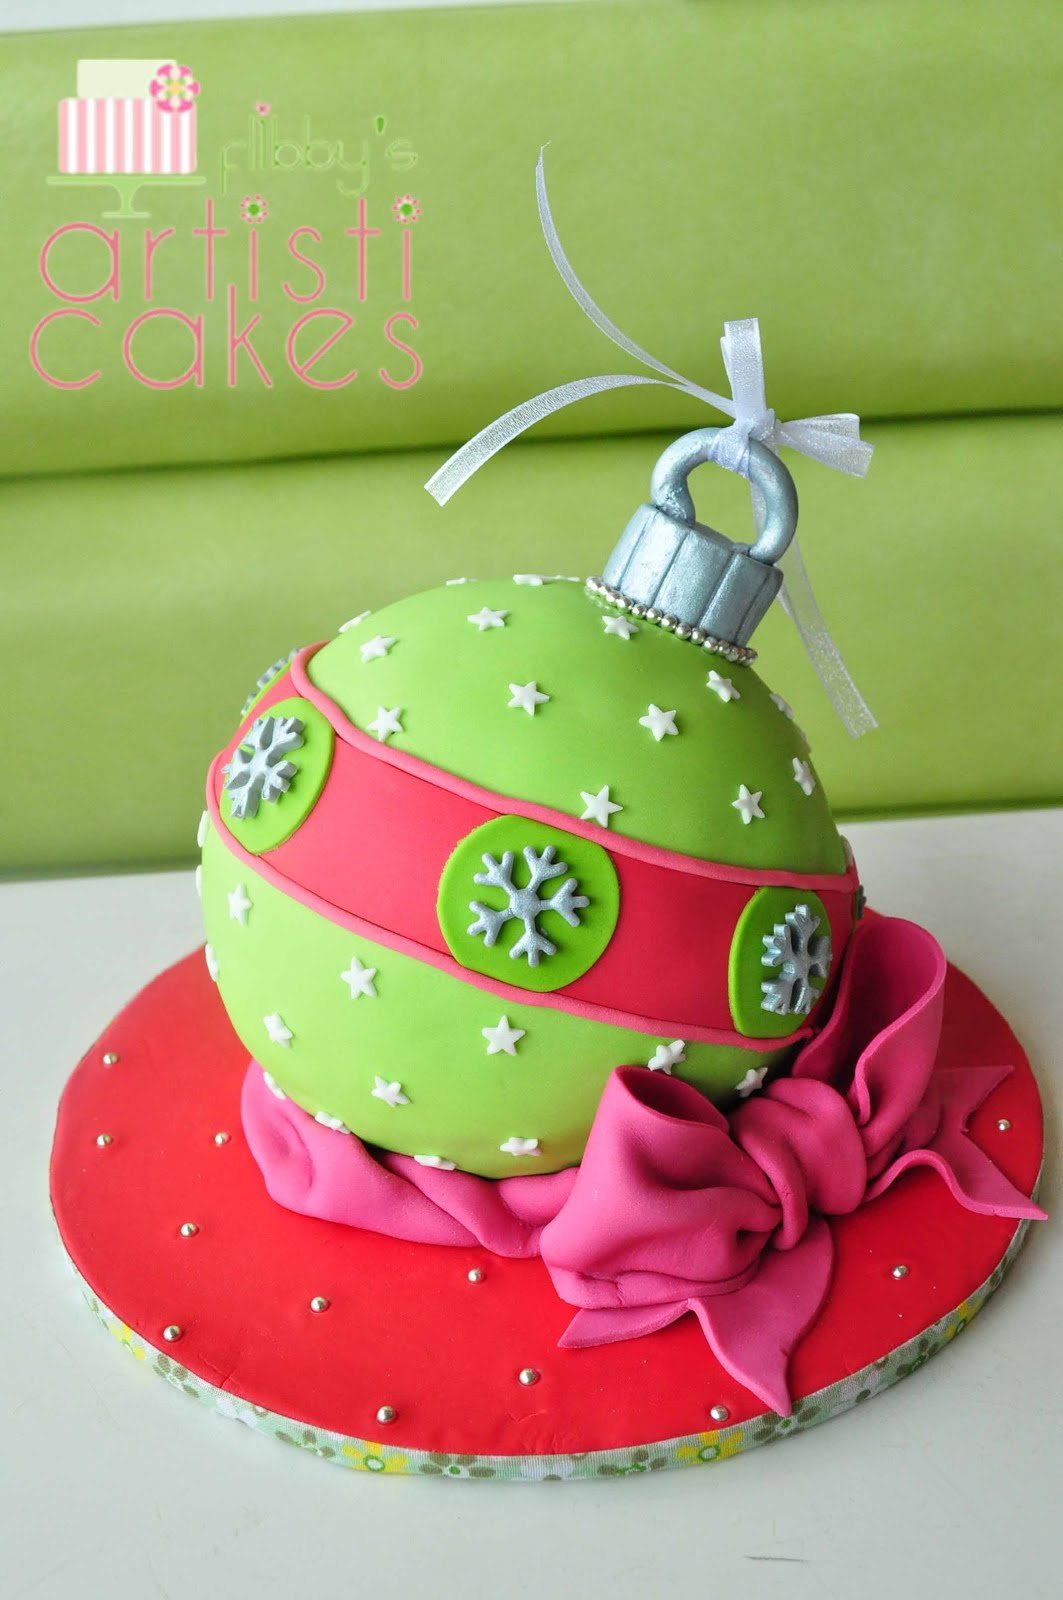 Flibby s Artisticakes: TOP 5 Favorite Cakes from 2012